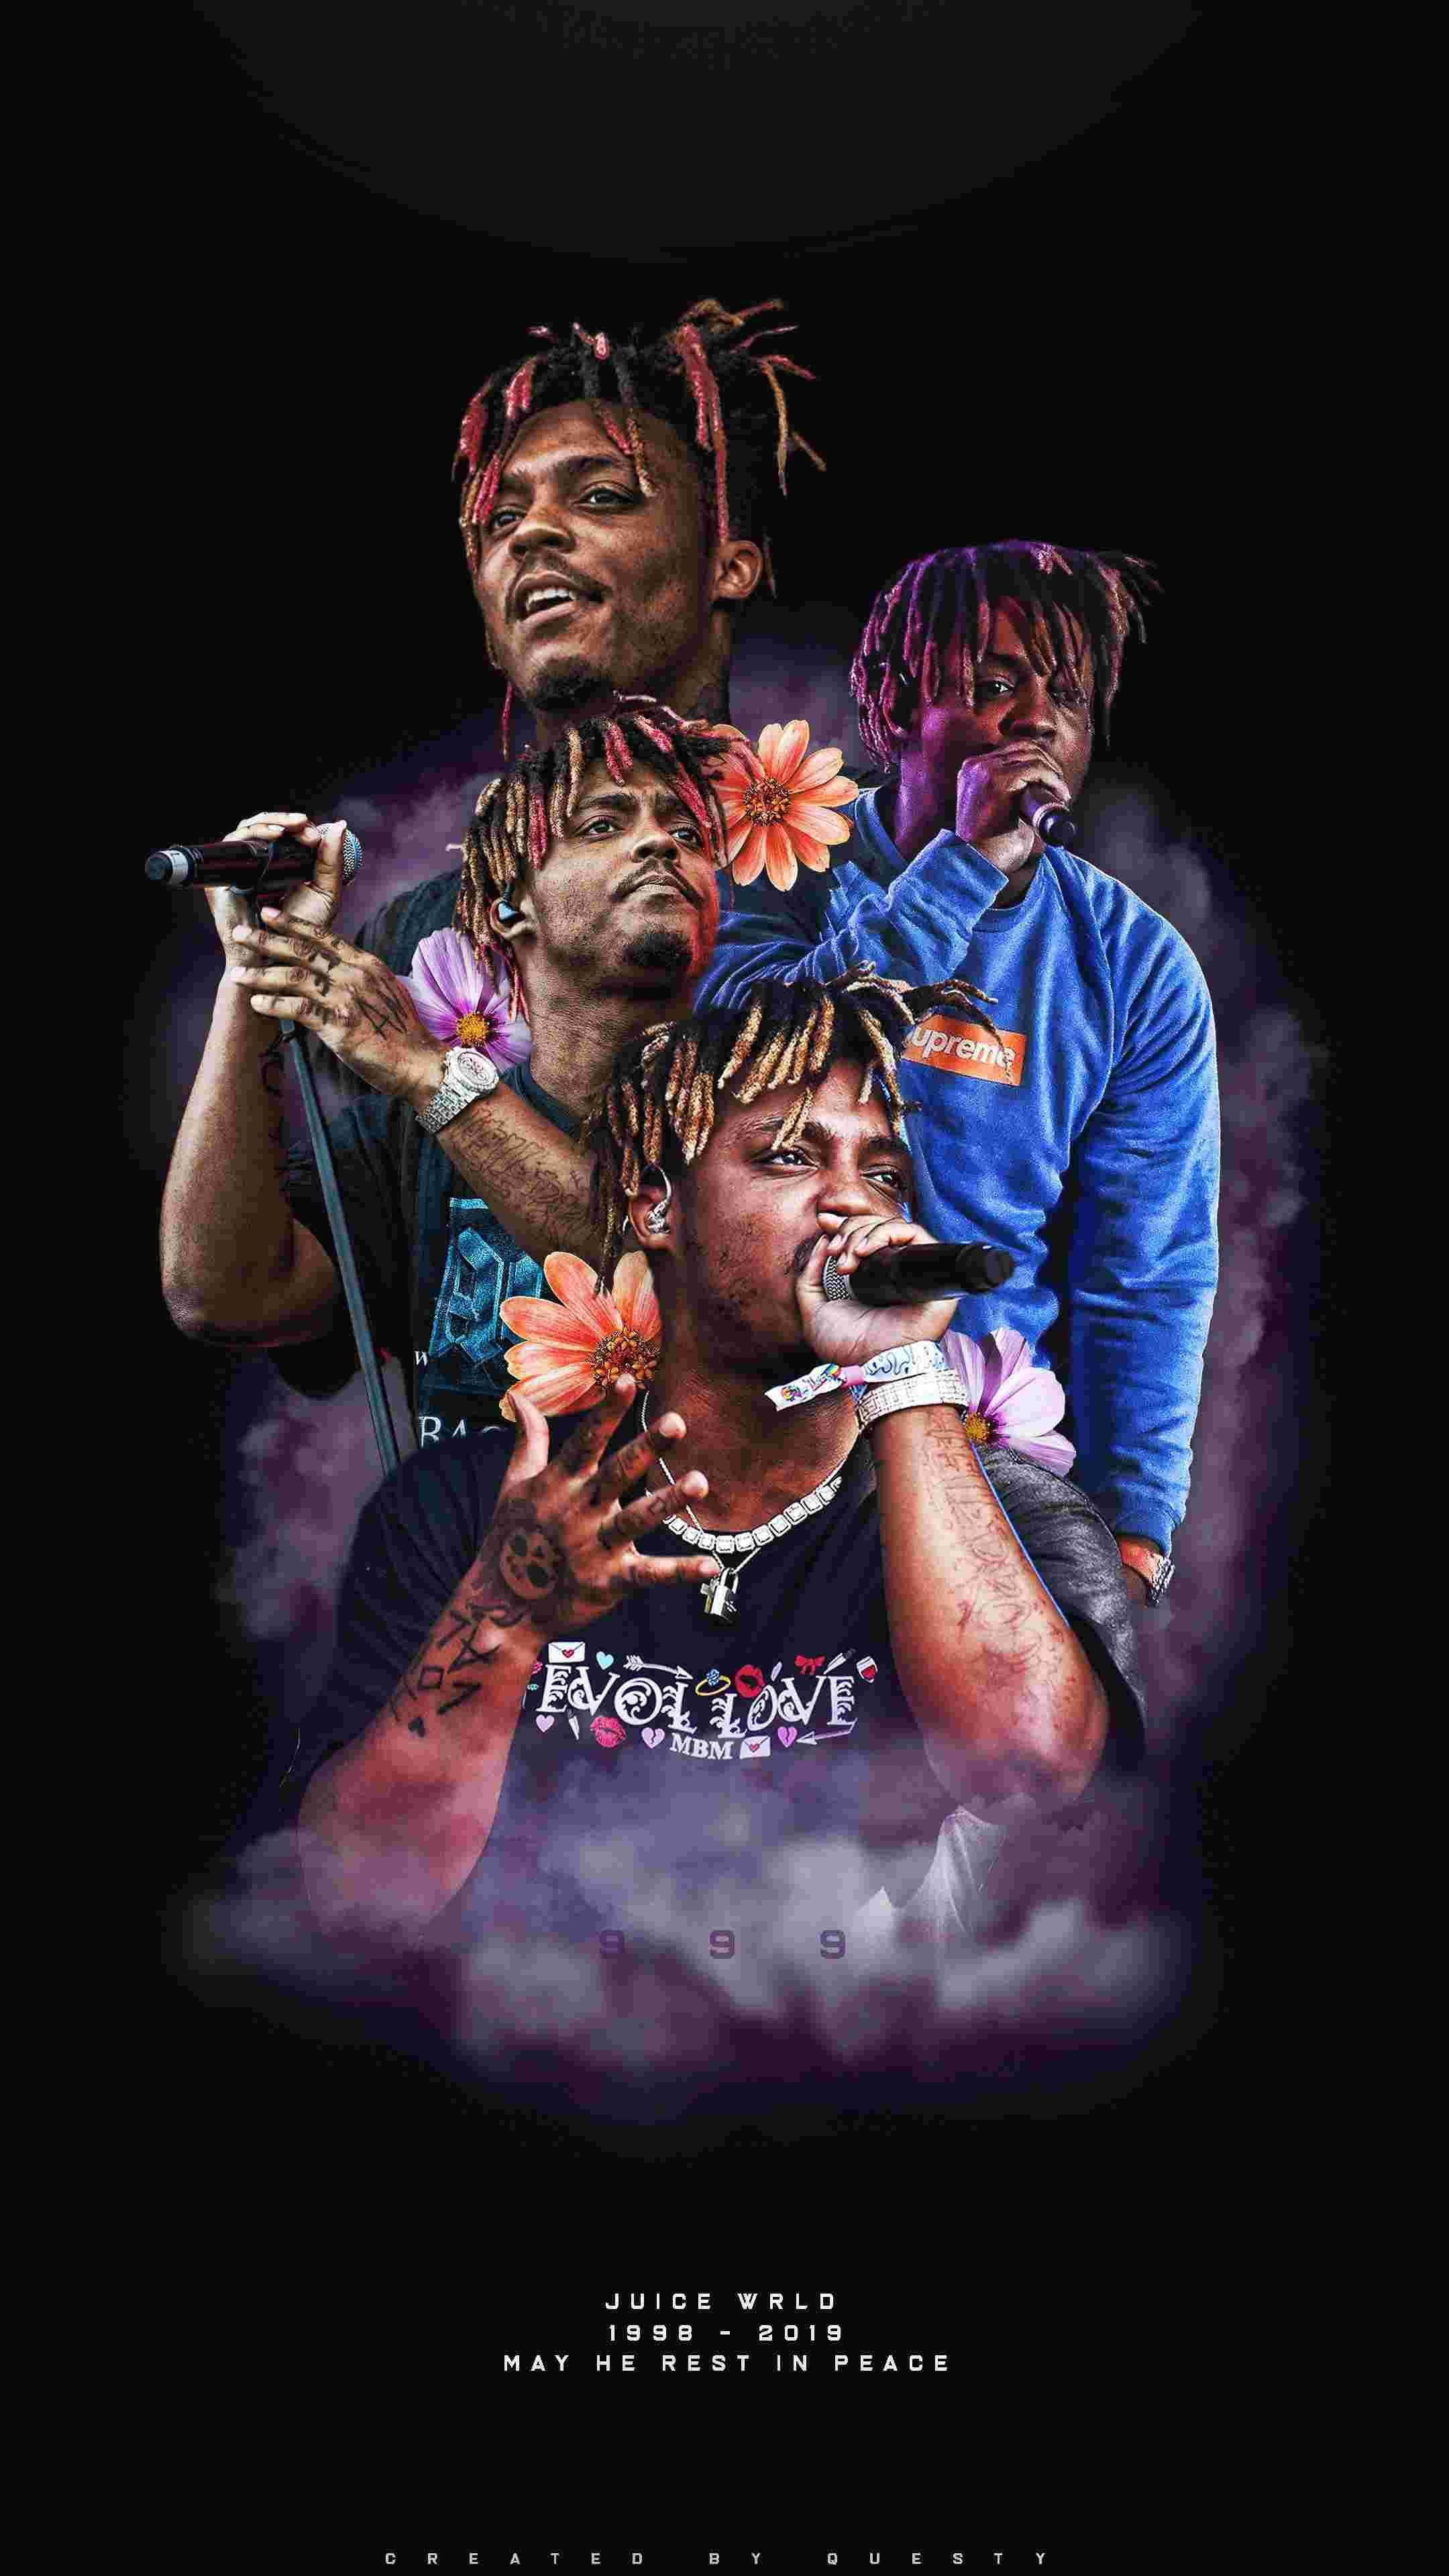 Legends Never Die Juice Wrld Wallpapers For Android Apk Download